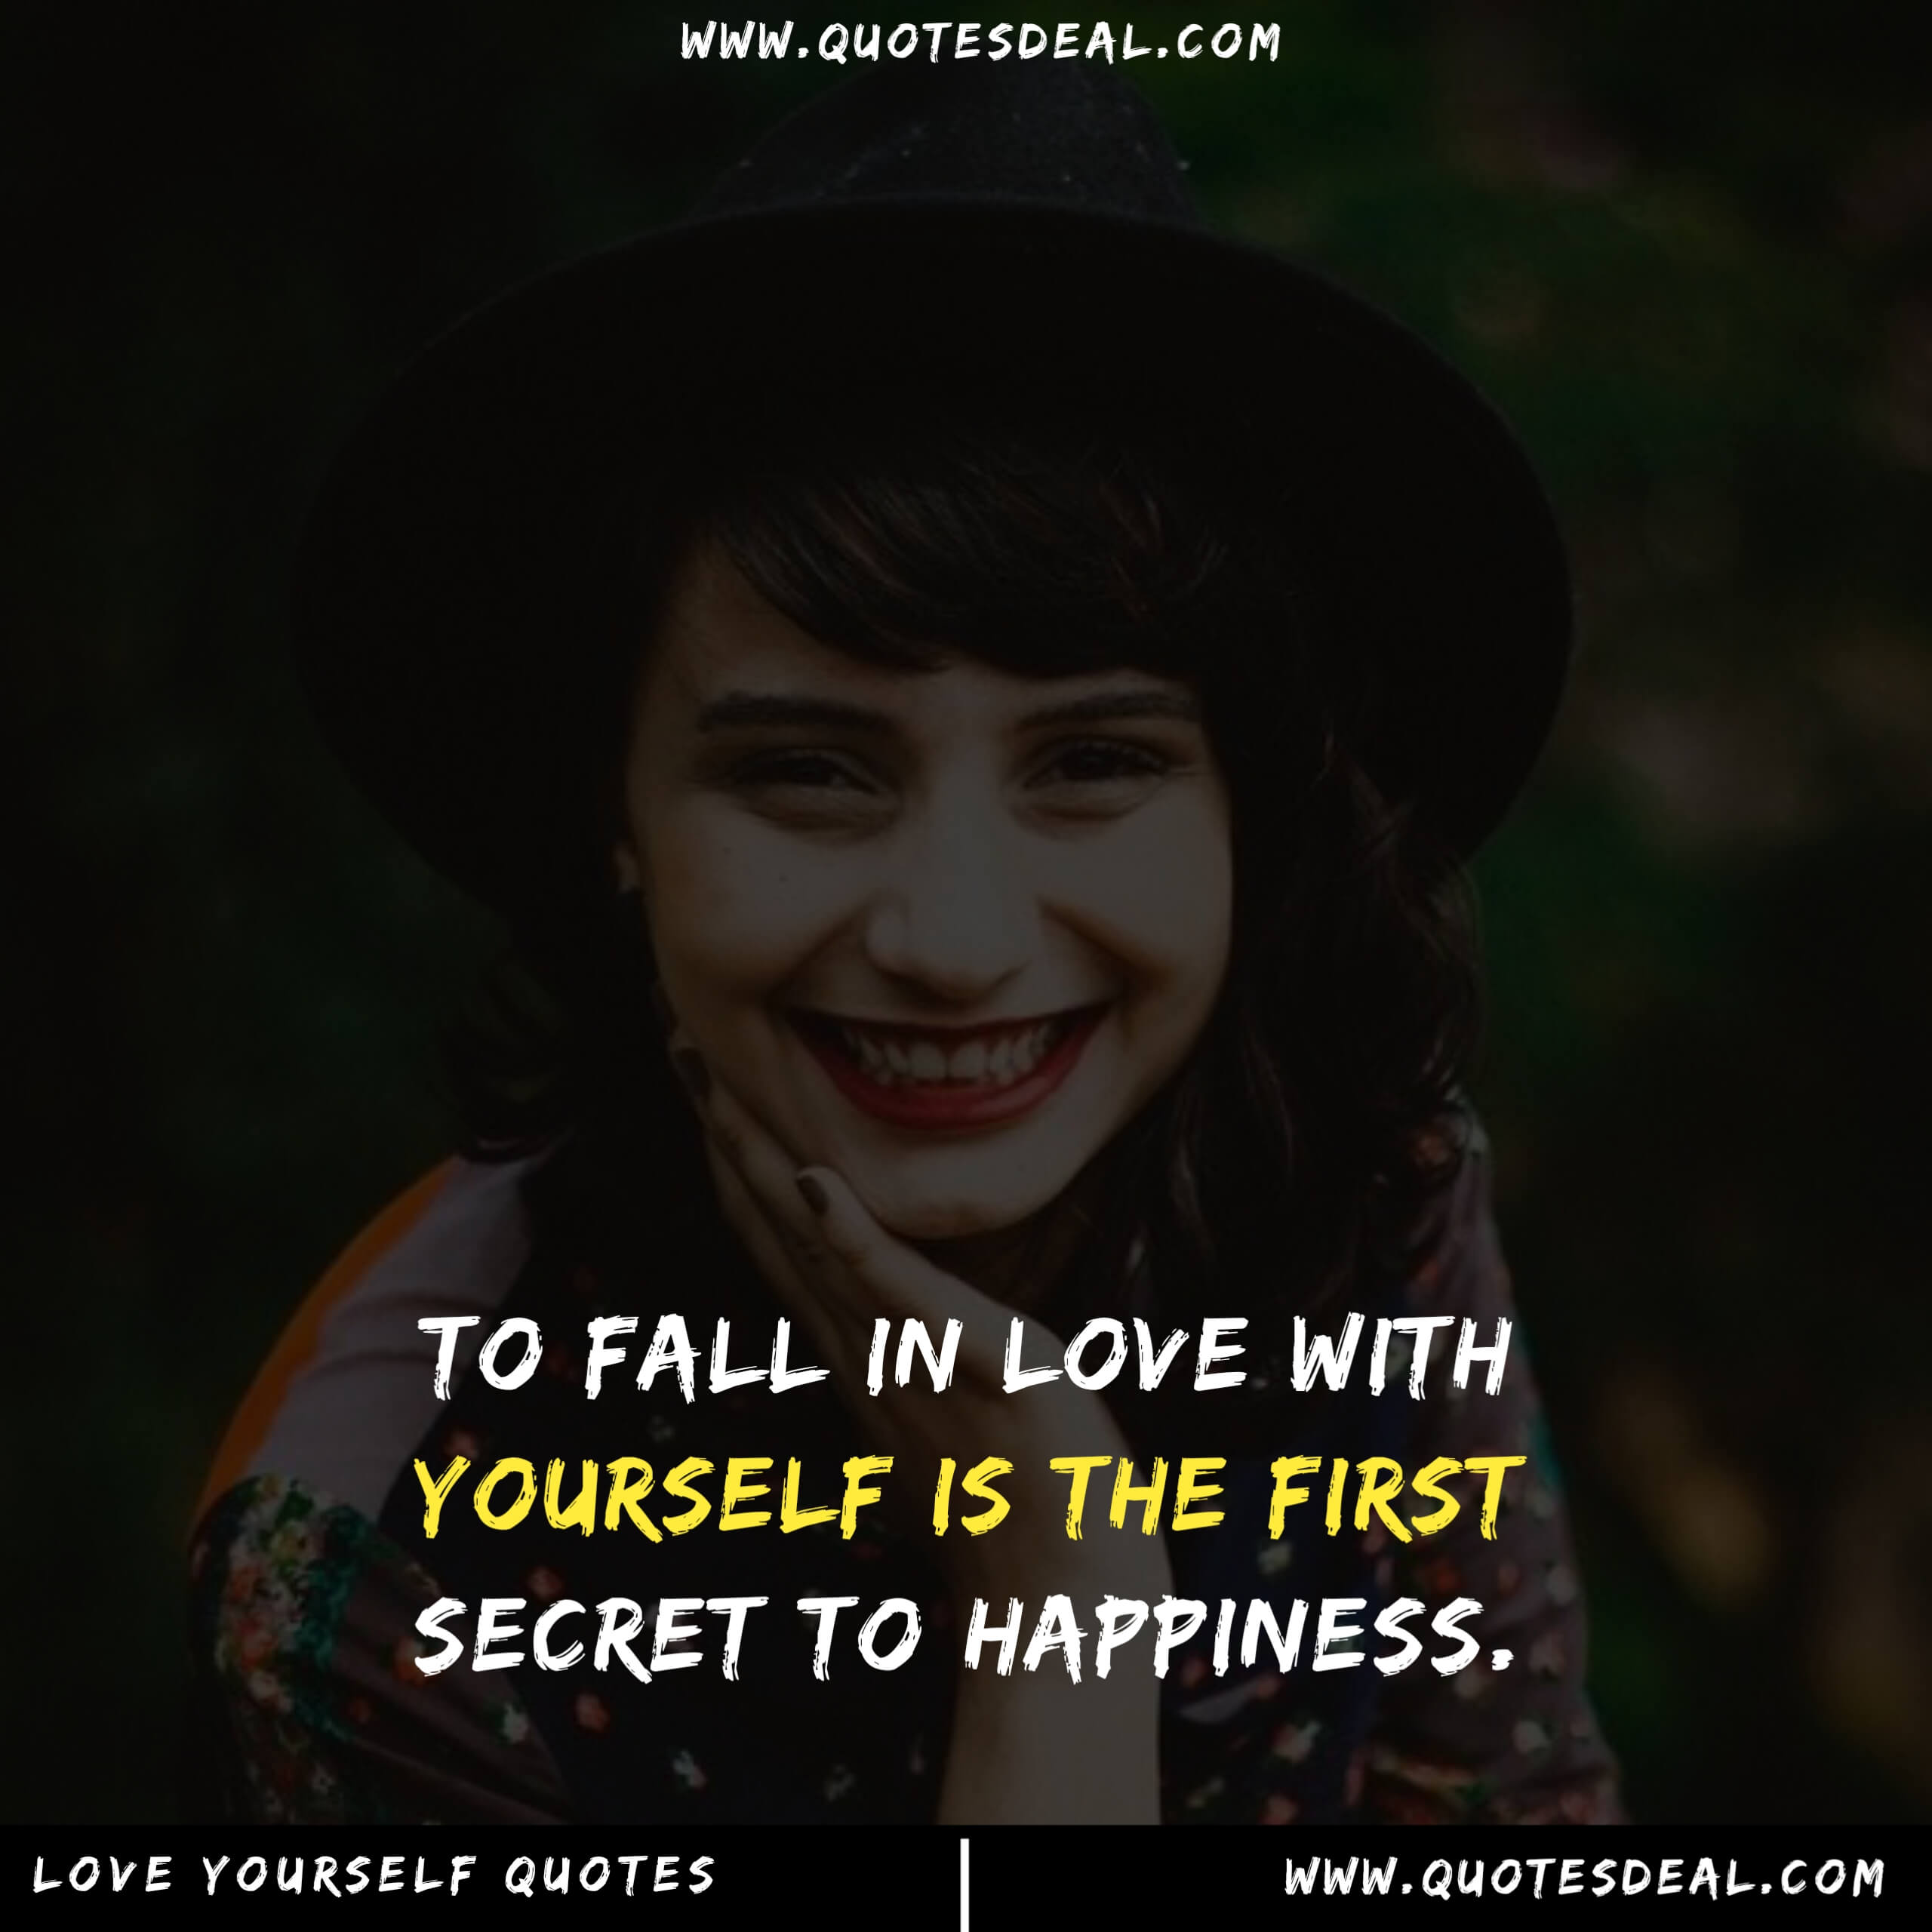 To fall in love with yourself